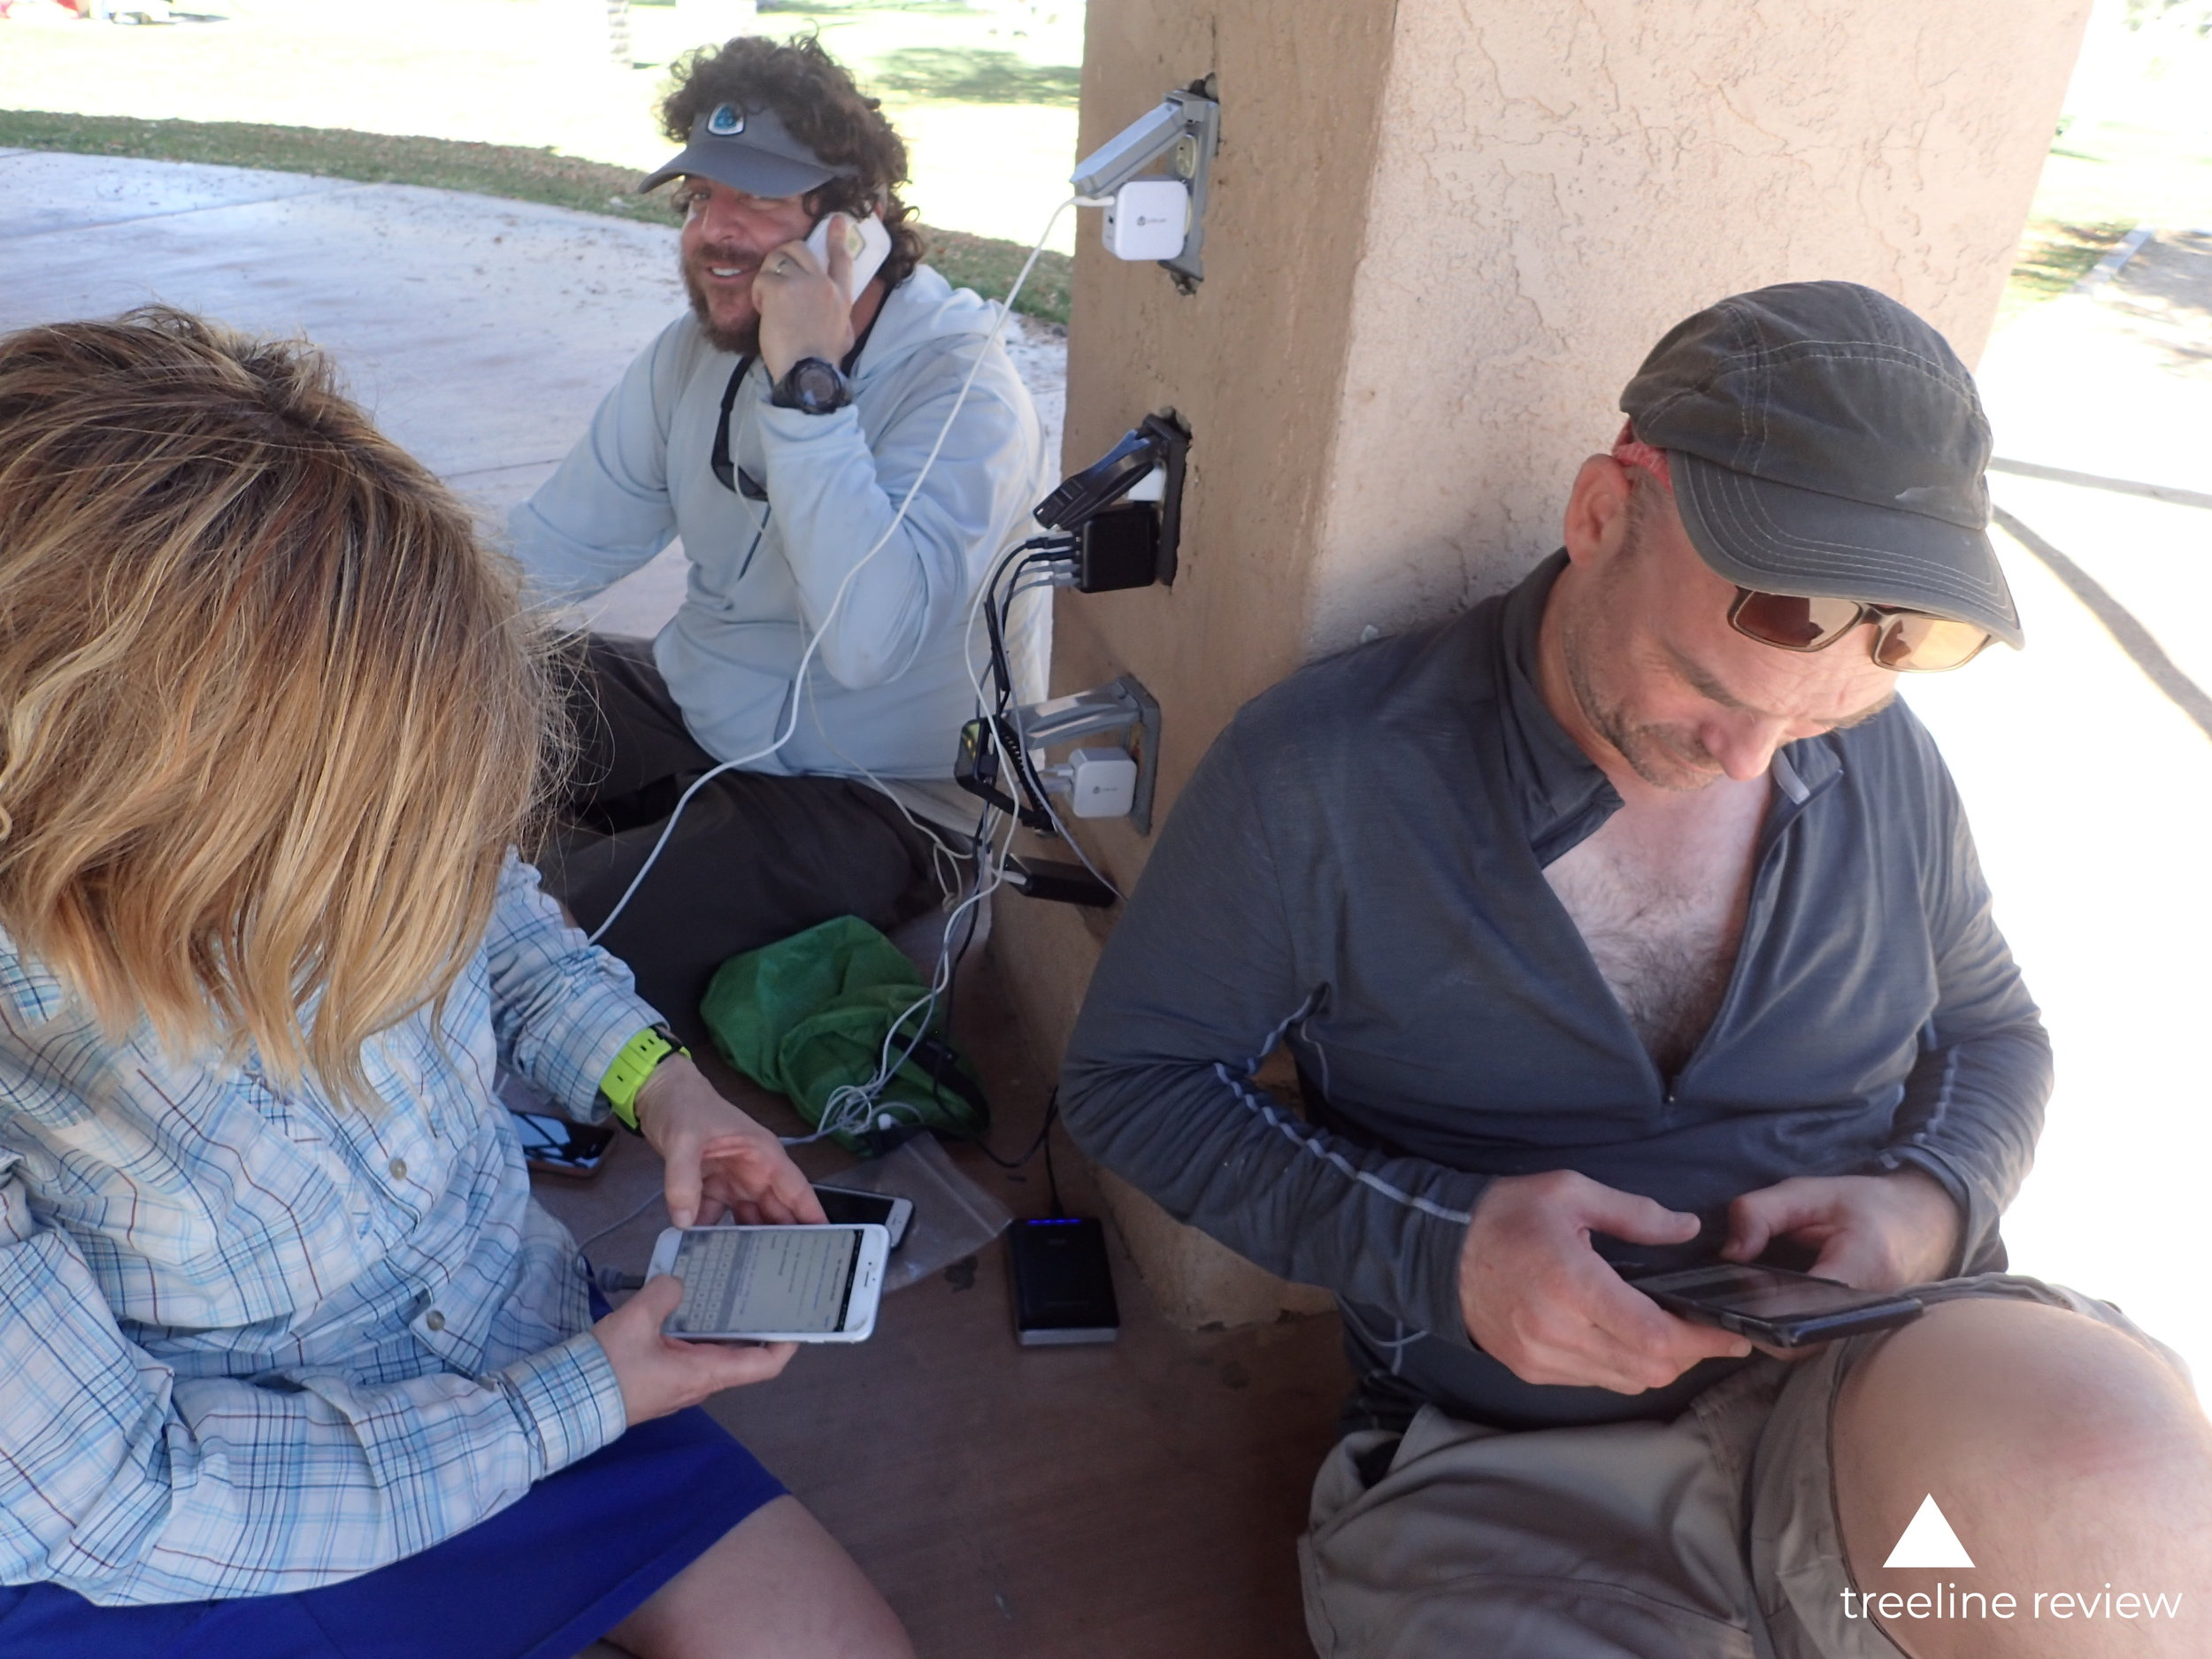 Hikers take every opportunity to charge their phones and external battery packs.